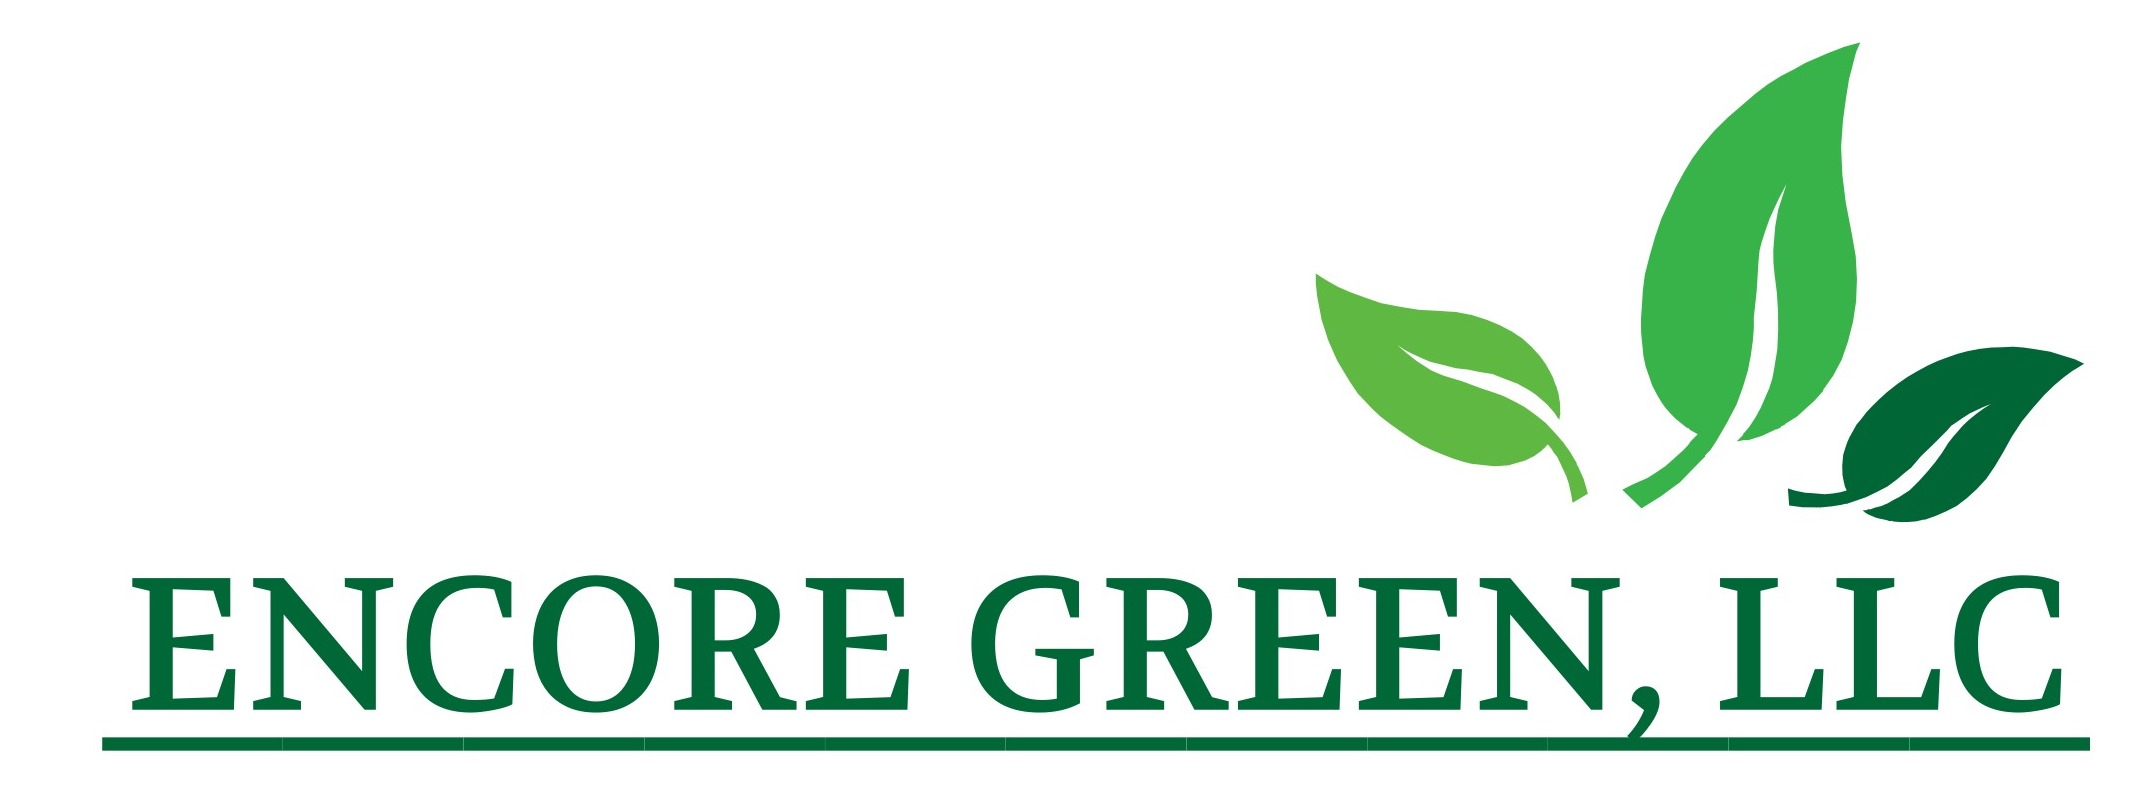 Encore Green, LLC